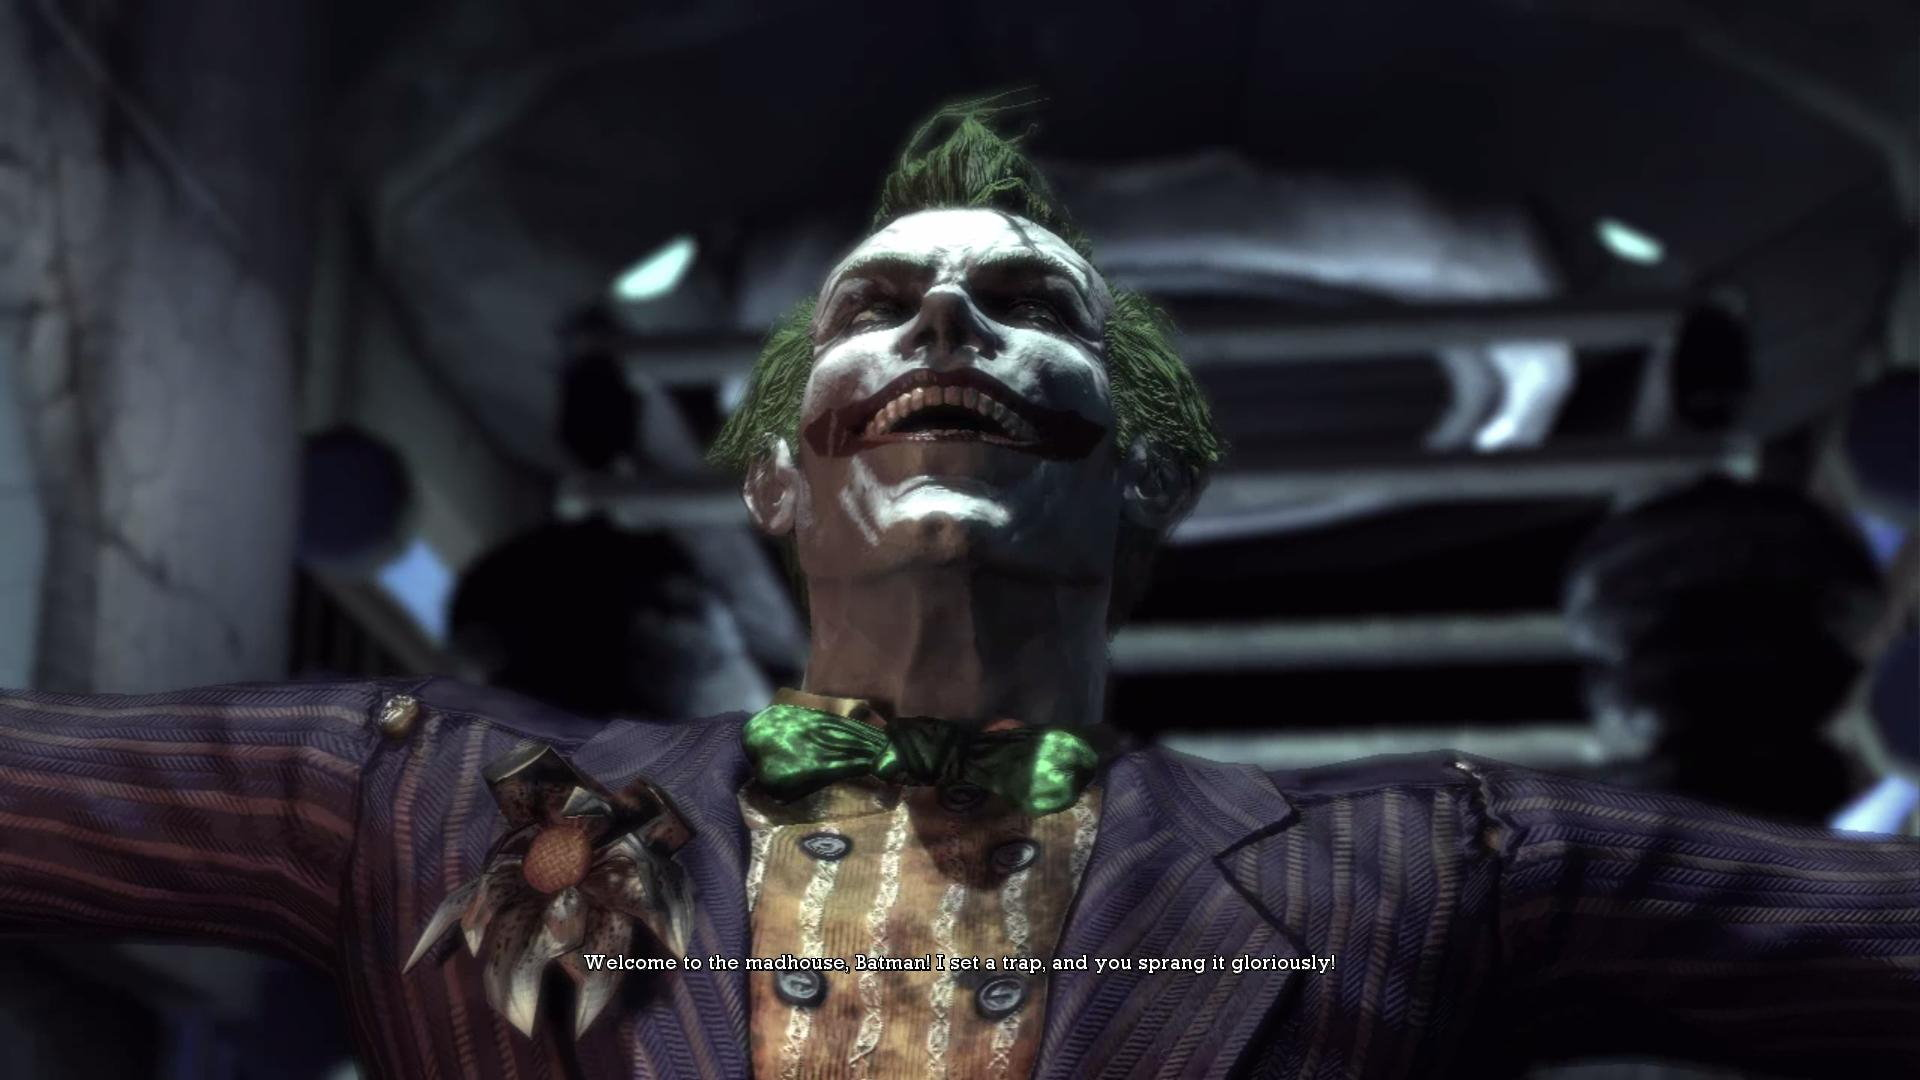 arkham asylum animated wallpaper batman review fckeditor party 1920x1080